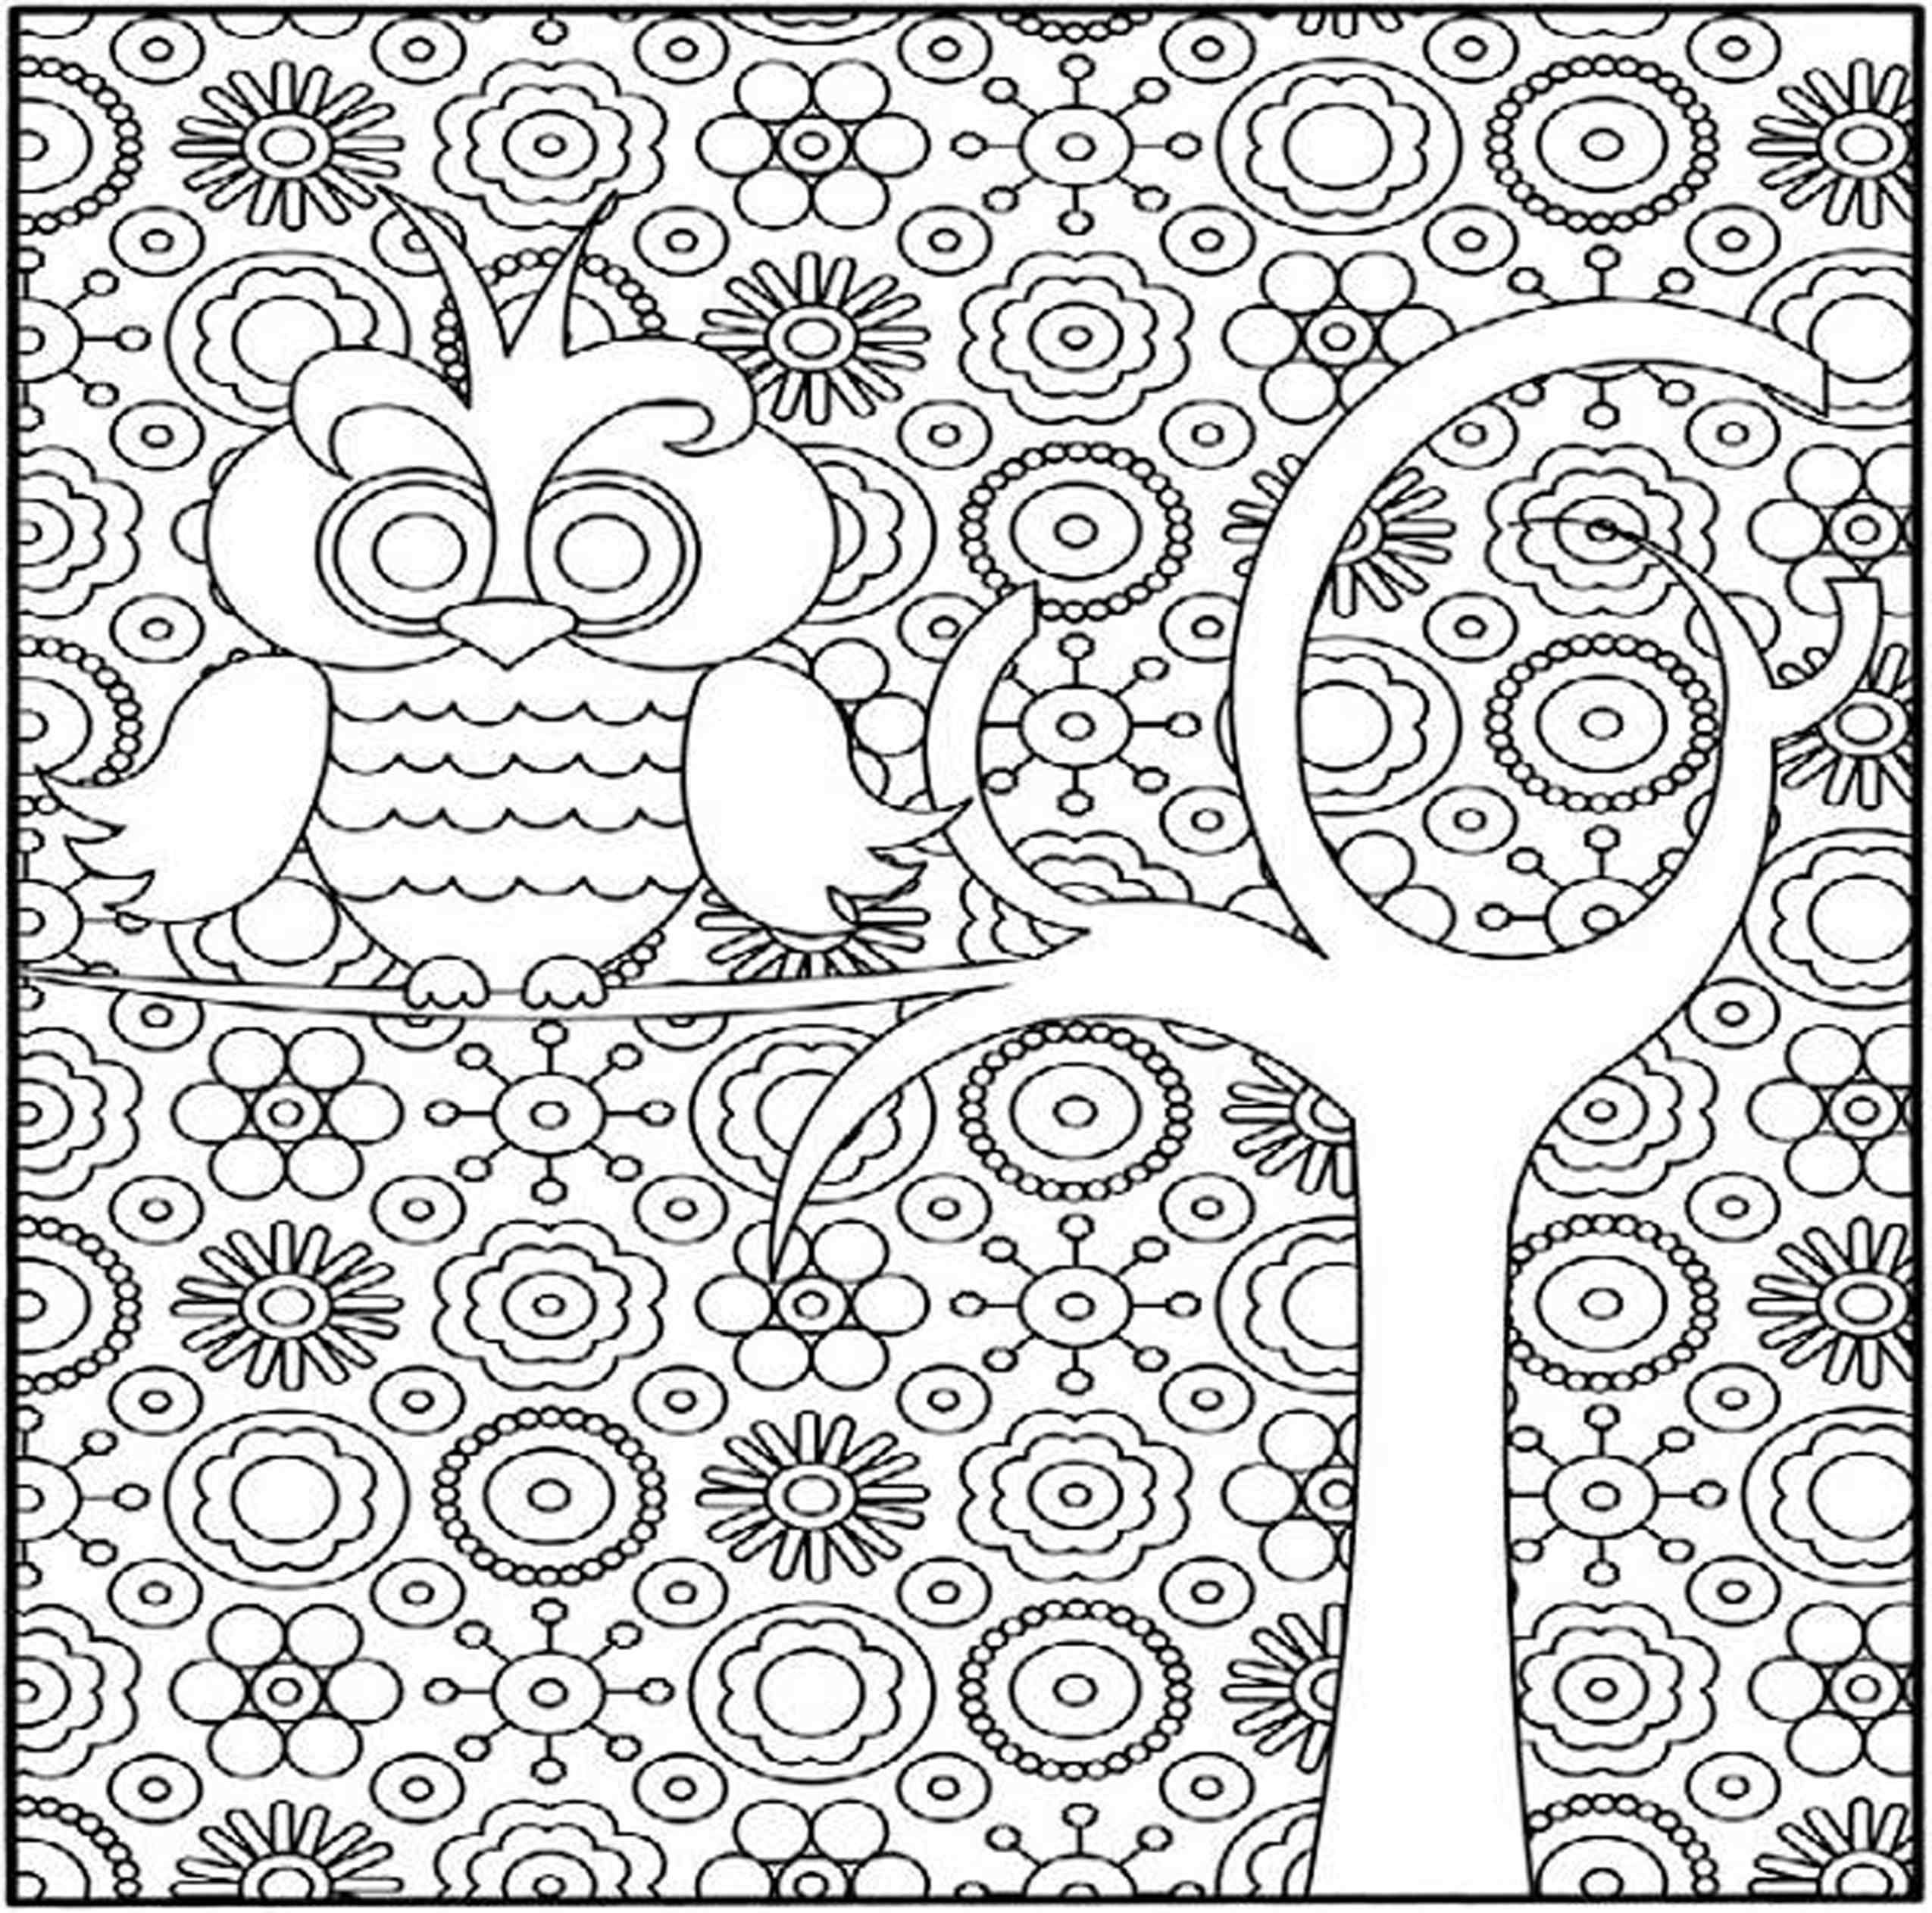 coloring pages for kids hard animorphia owls hard coloring pages hard coloring pages kids hard pages for coloring